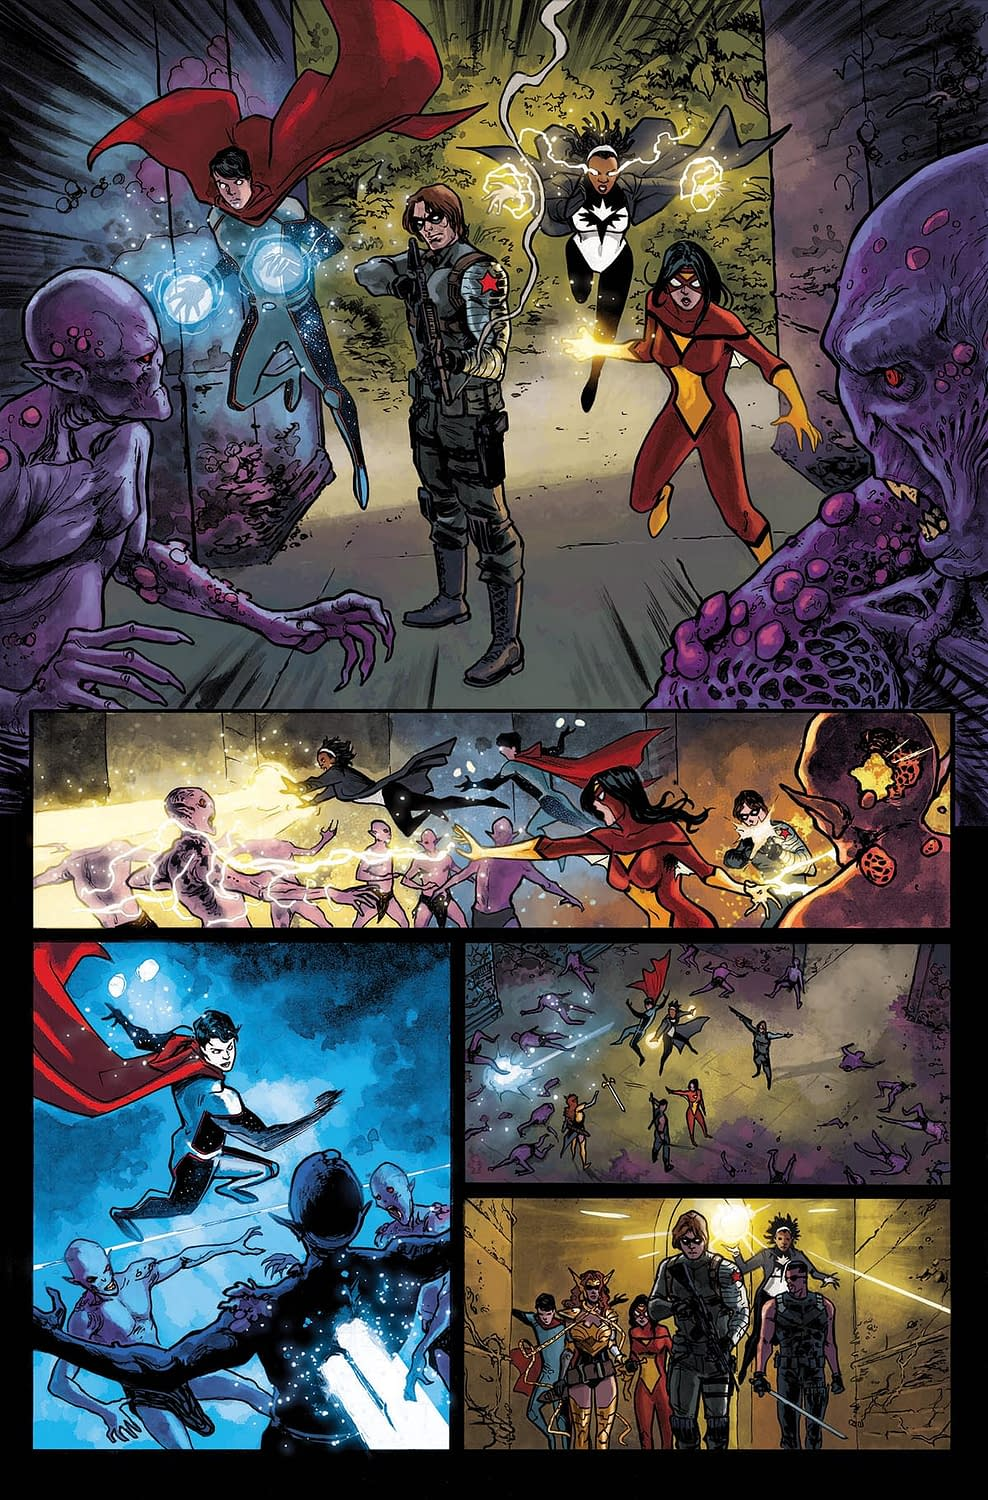 Get a Better Look at the Marvel Universe's Underside with Strikefore Digital Director's Cut